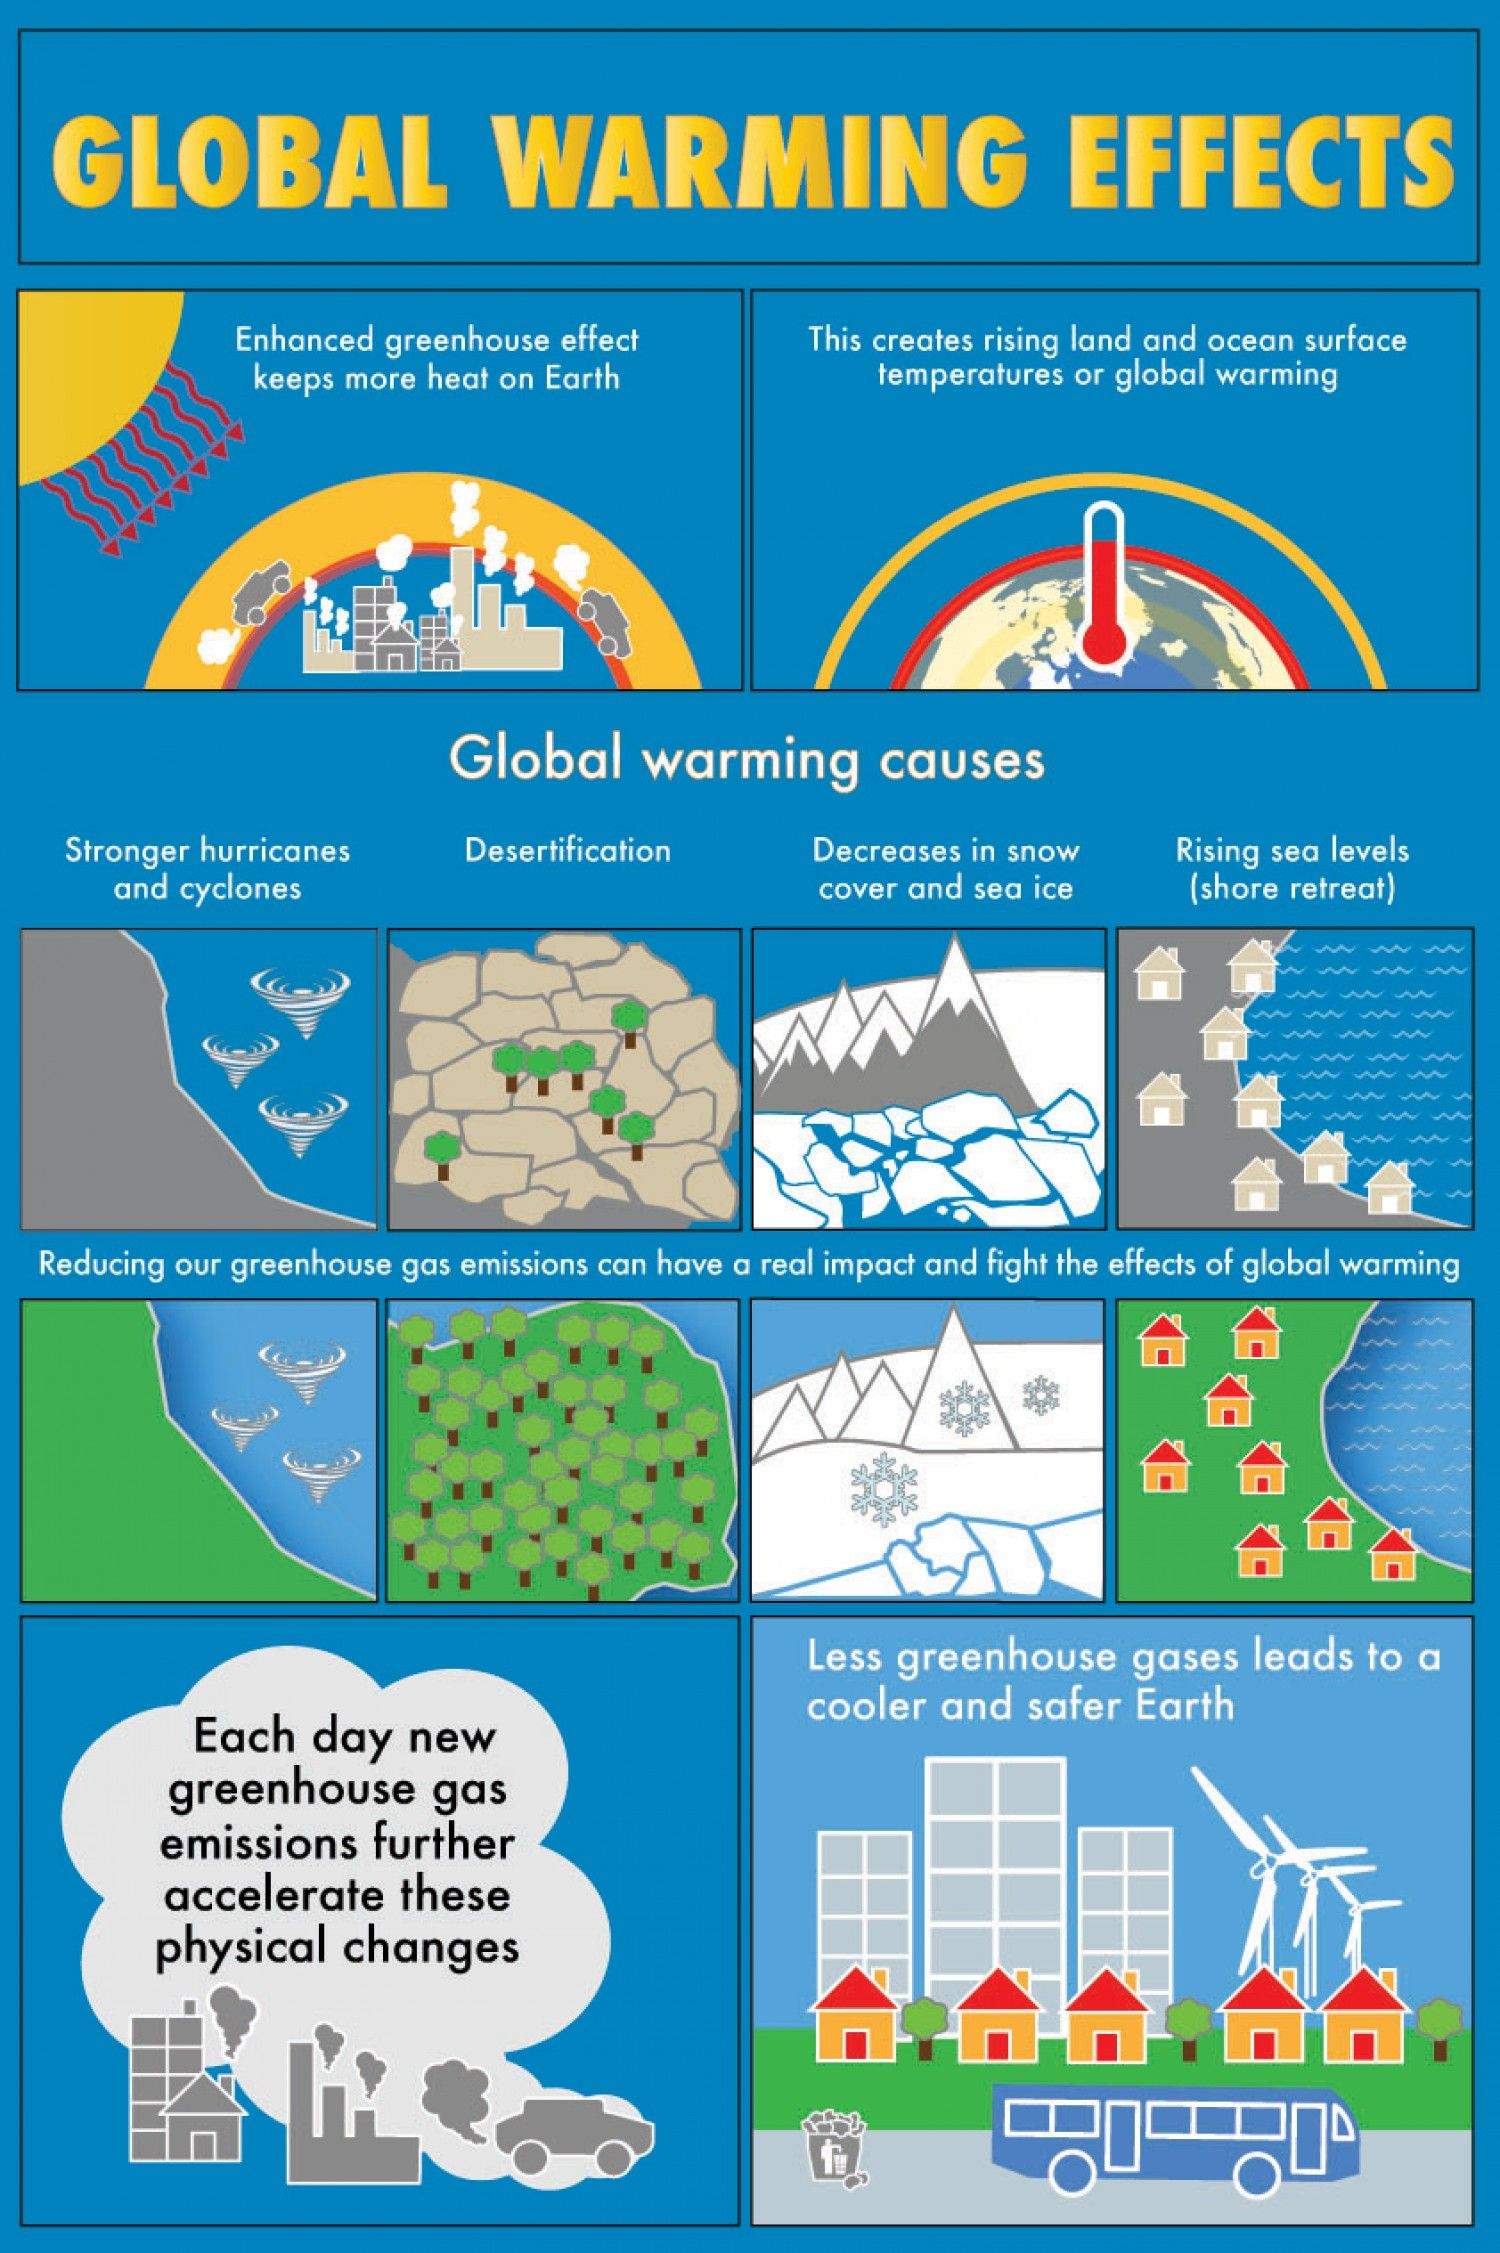 global warming causes and effects infographic education global warming causes and effects infographic effects infographicinfographic kidsenvironmental